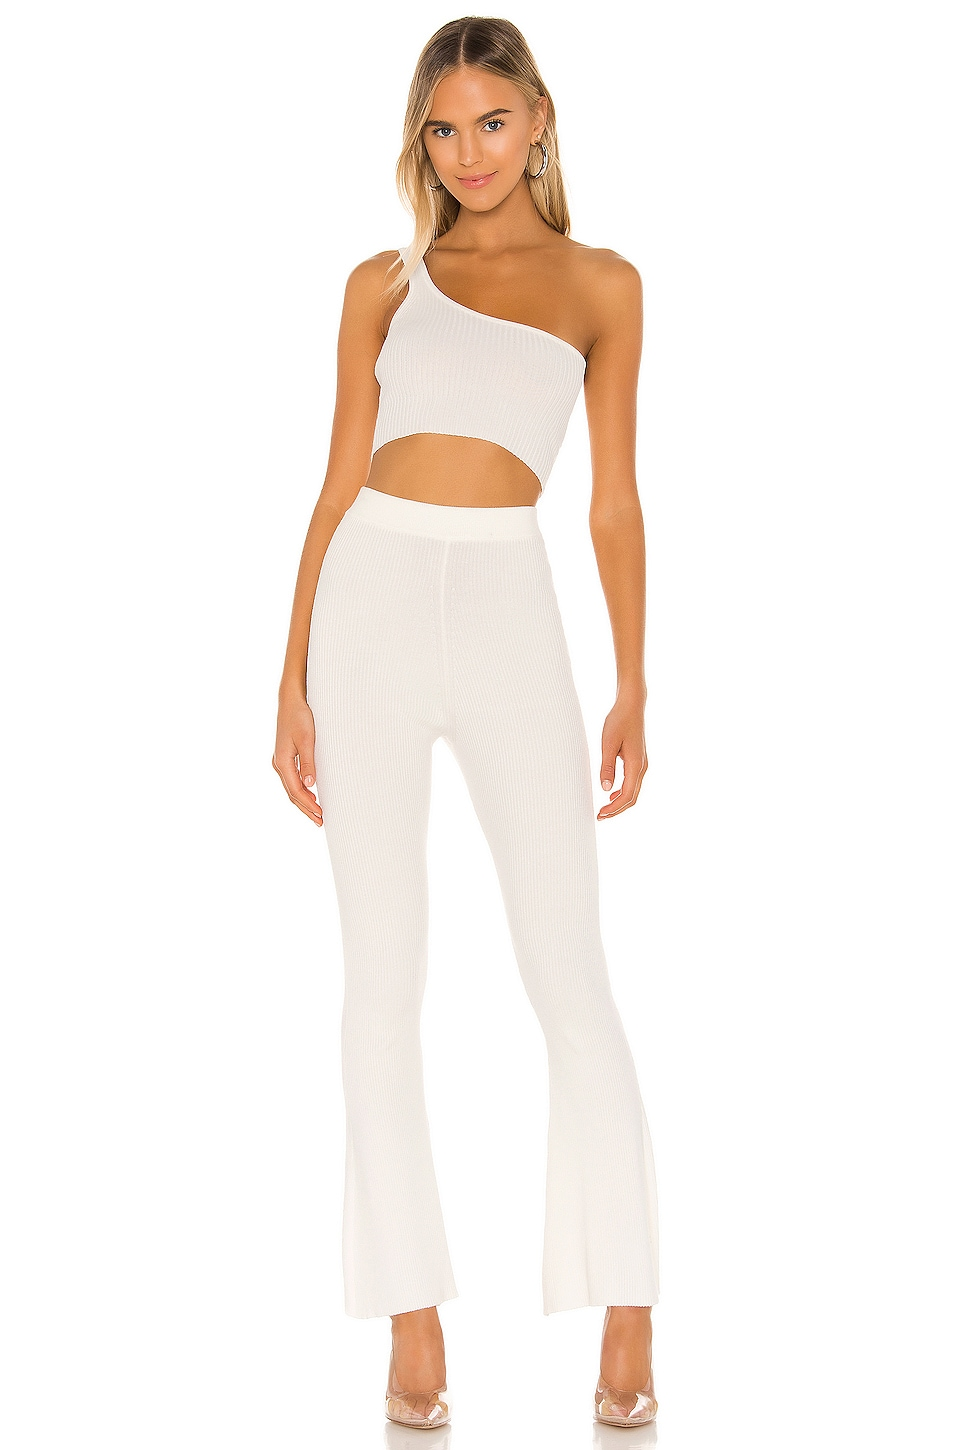 superdown Carrie Knit Pant Set in Ivory